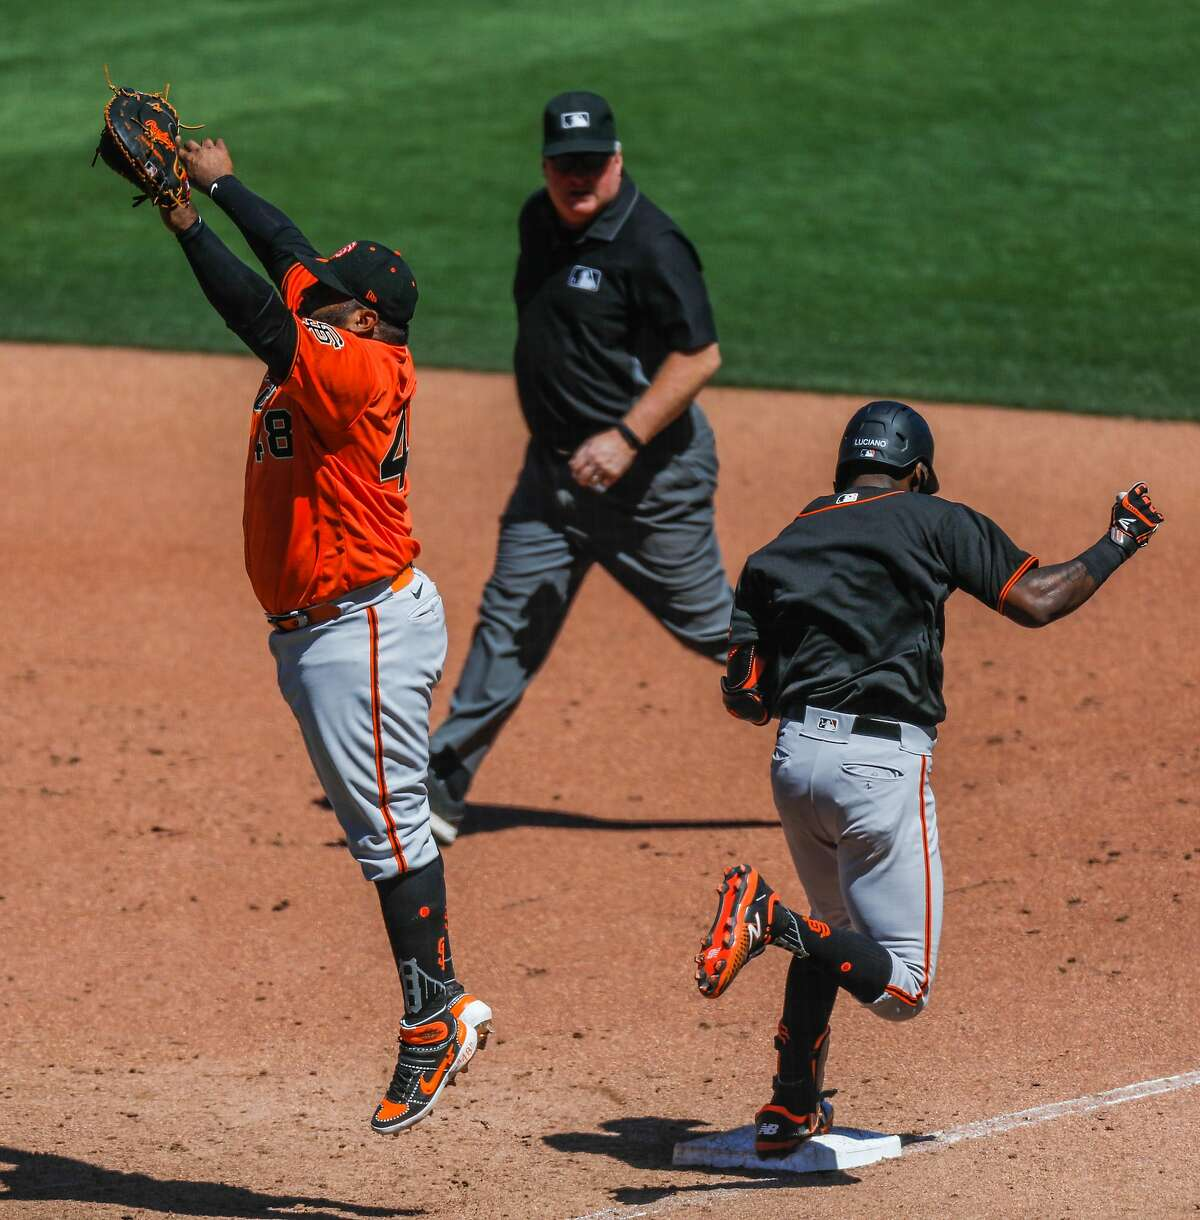 San Francisco Giants Pablo Sandoval reaches up to catch the ball as Marco Luciano (right) makes it to first base during Spring Training at Oracle Park on Sunday, July 12, 2020 in San Francisco, California.